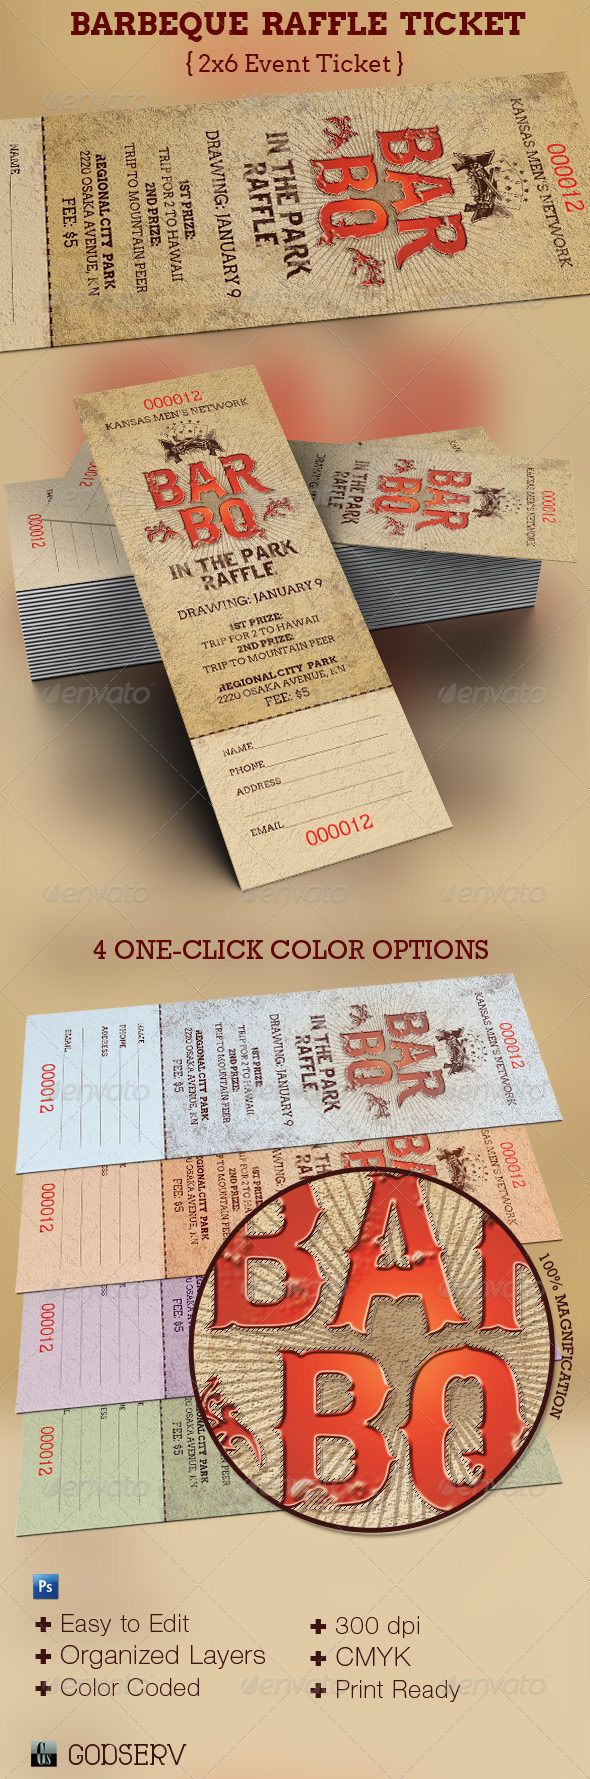 barbeque raffle ticket template  harvest fest  barbecue